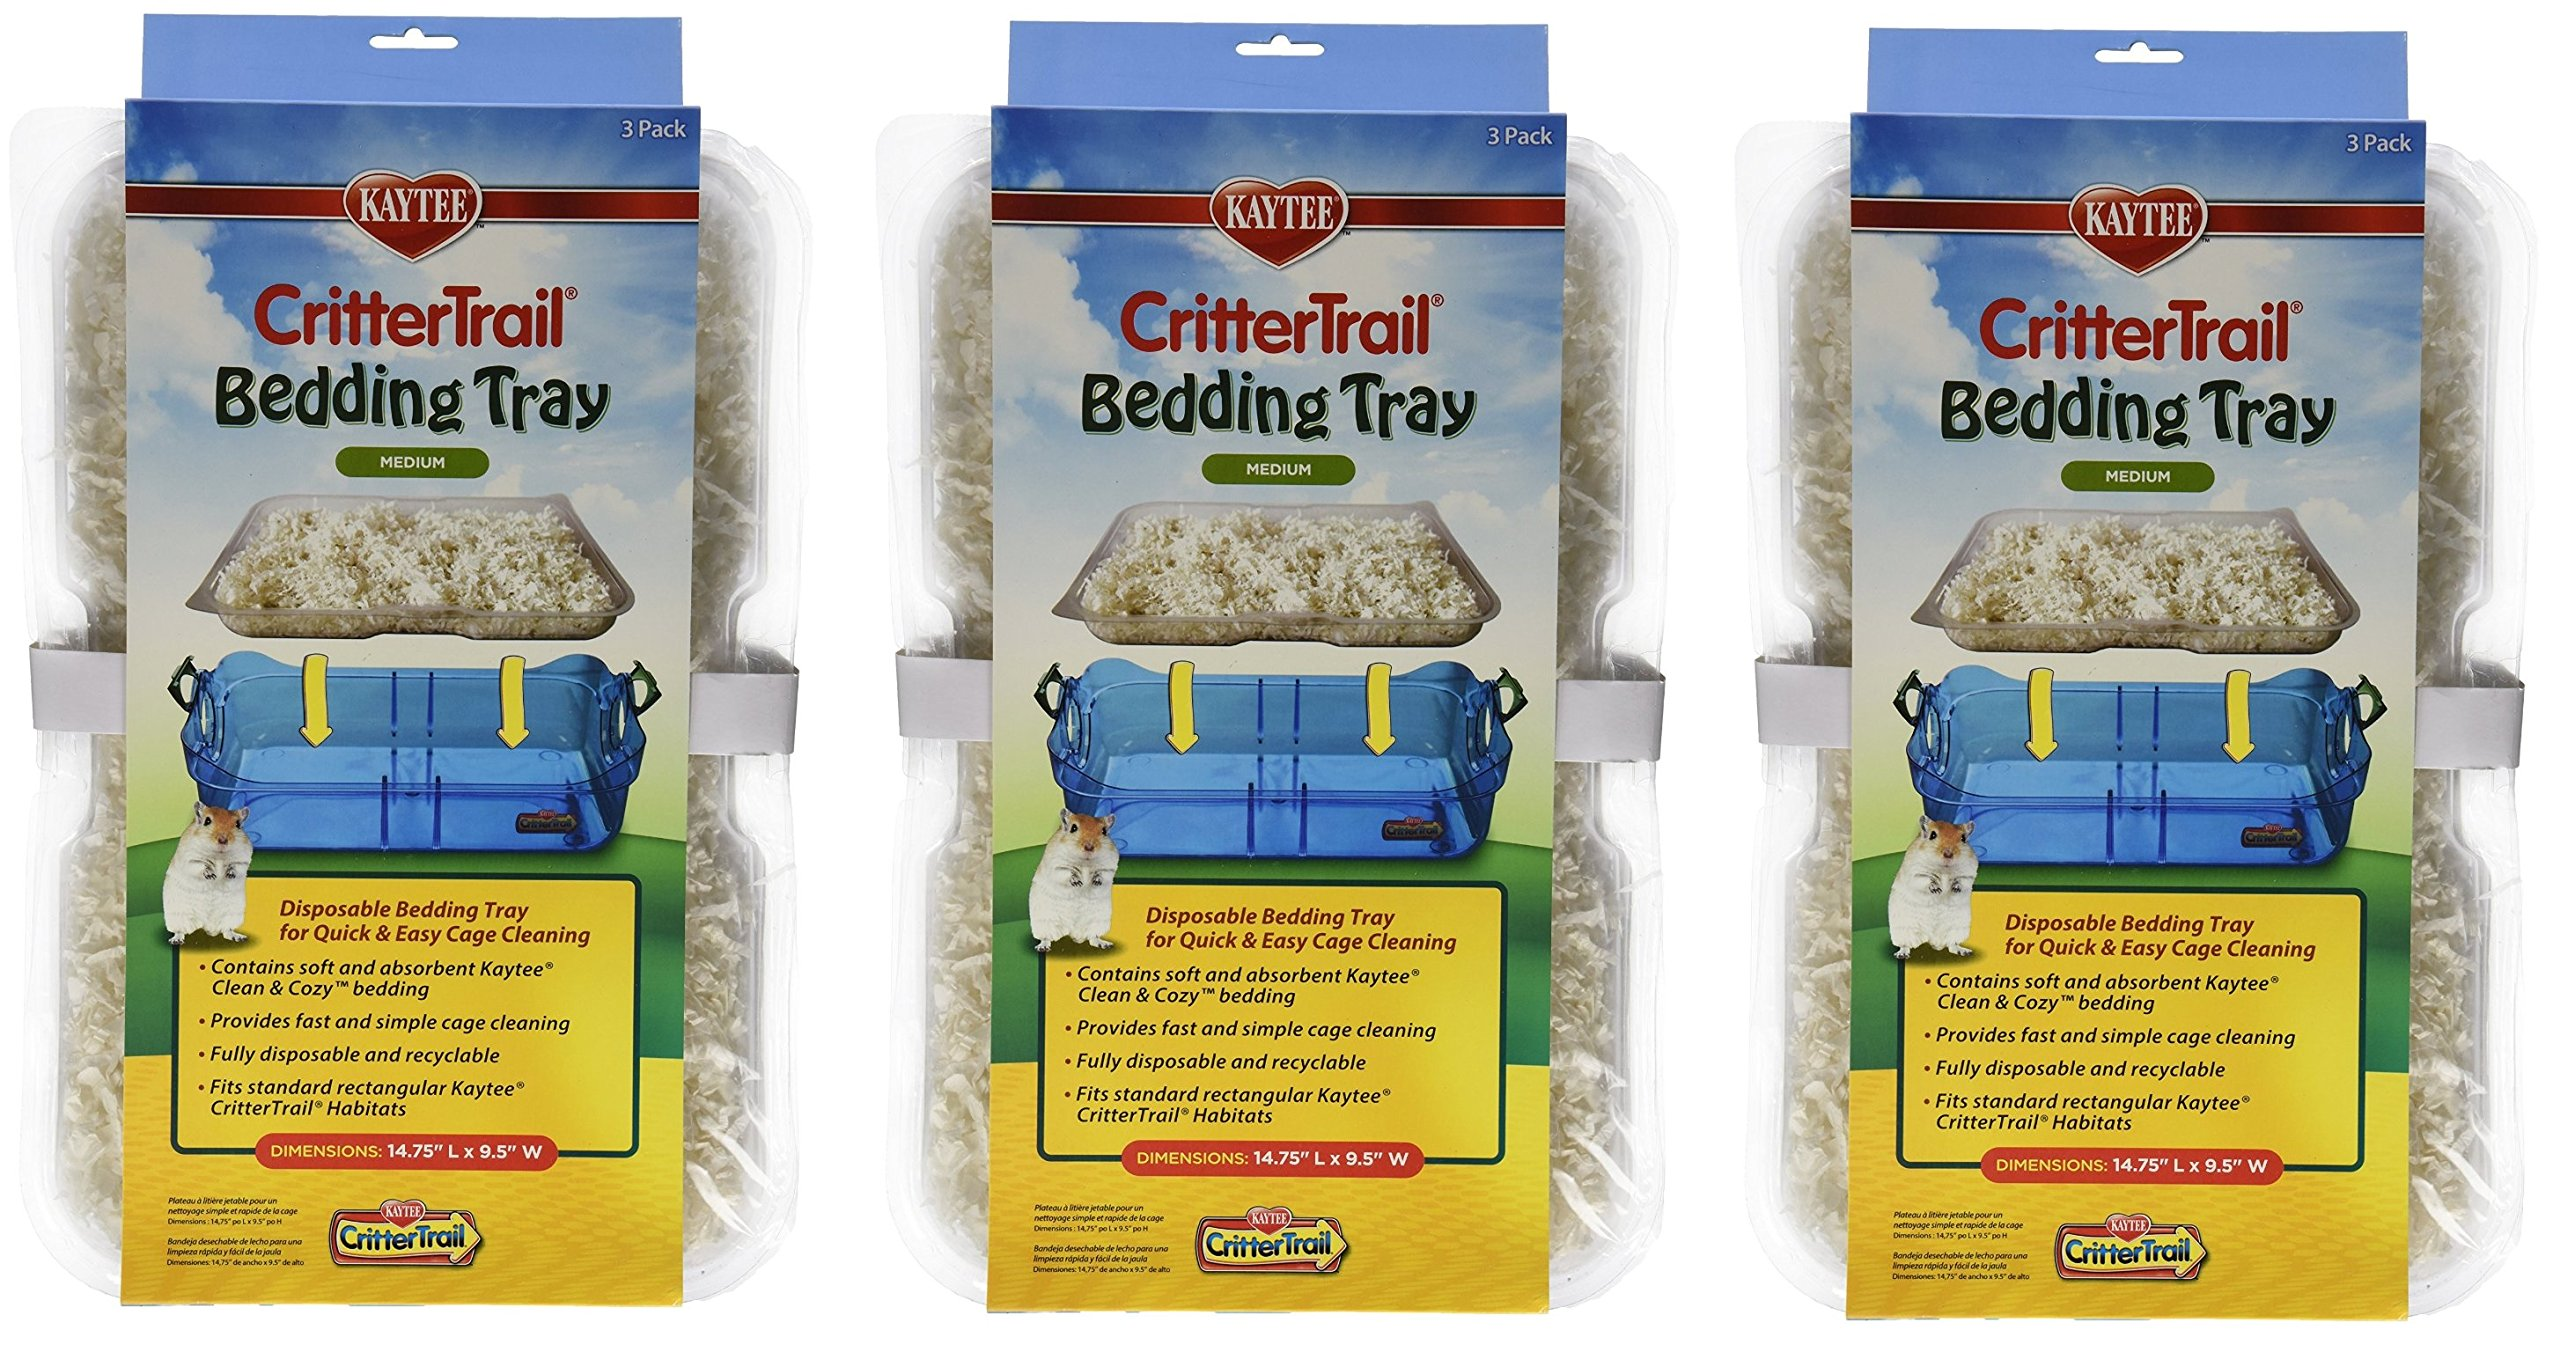 Kaytee CritterTrail Habitat Disposable Bedding Tray, 9-Count Total (3 Packages with 3 Trays Each)